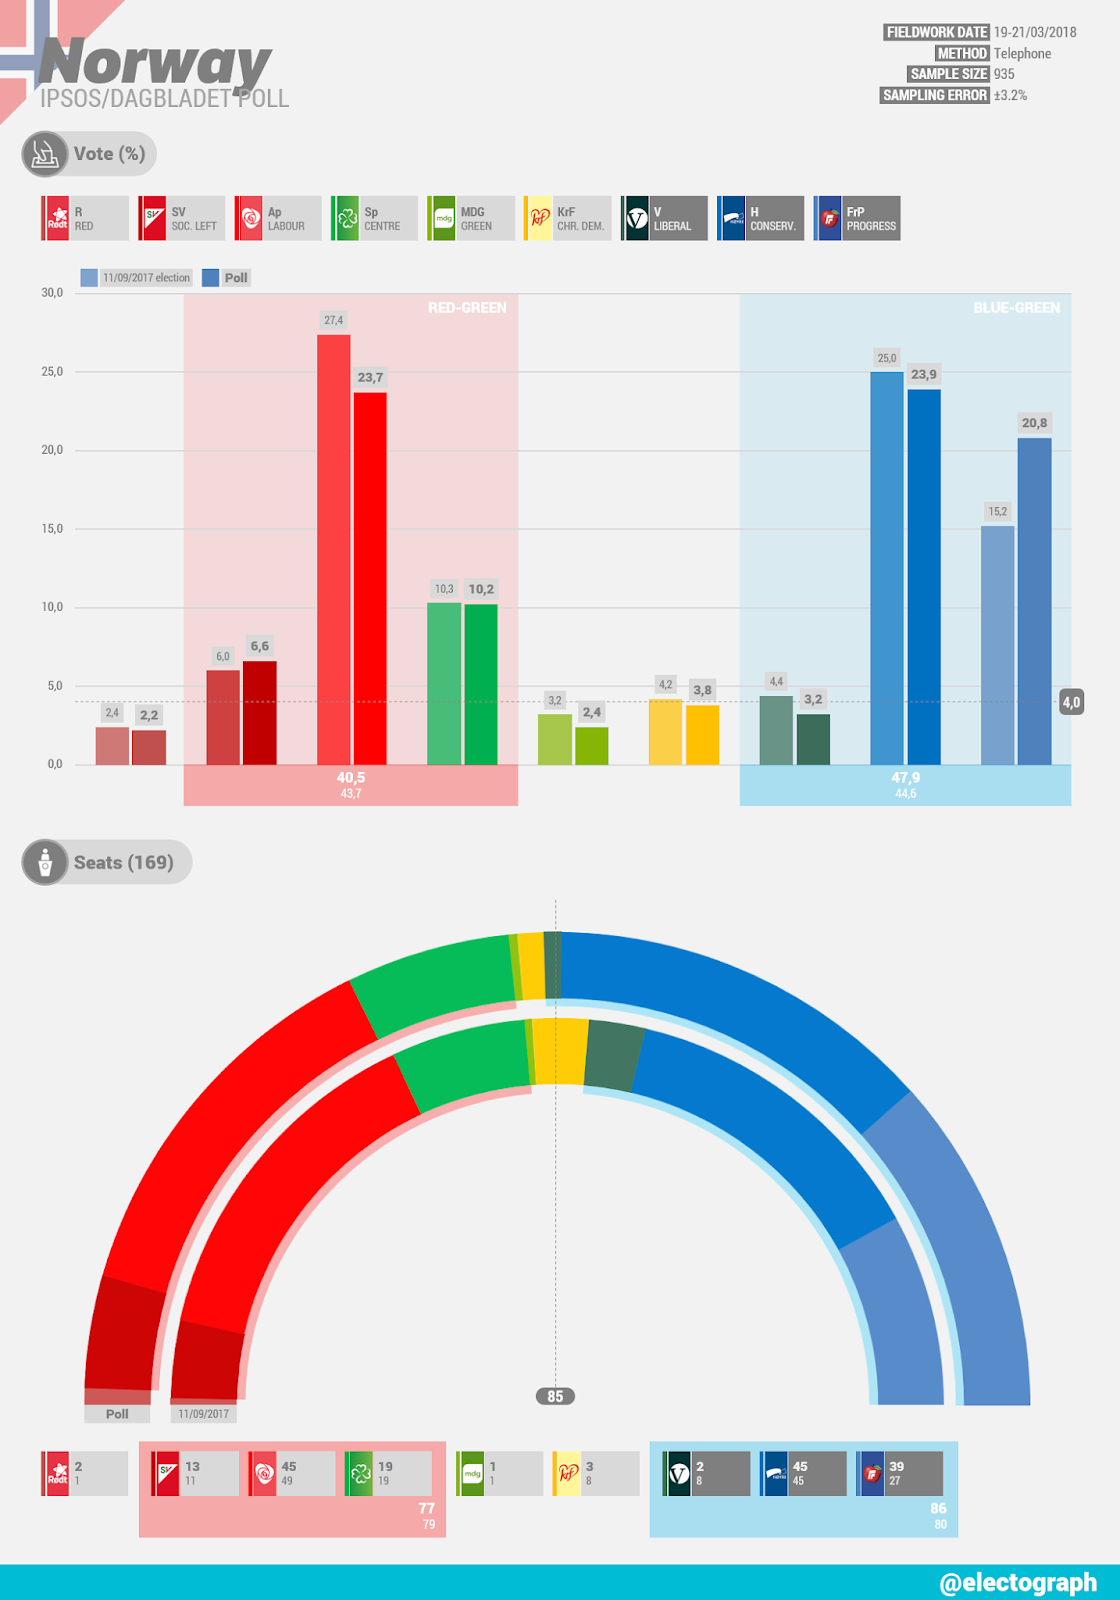 NORWAY Ipsos poll chart for Dagbladet, March 2018